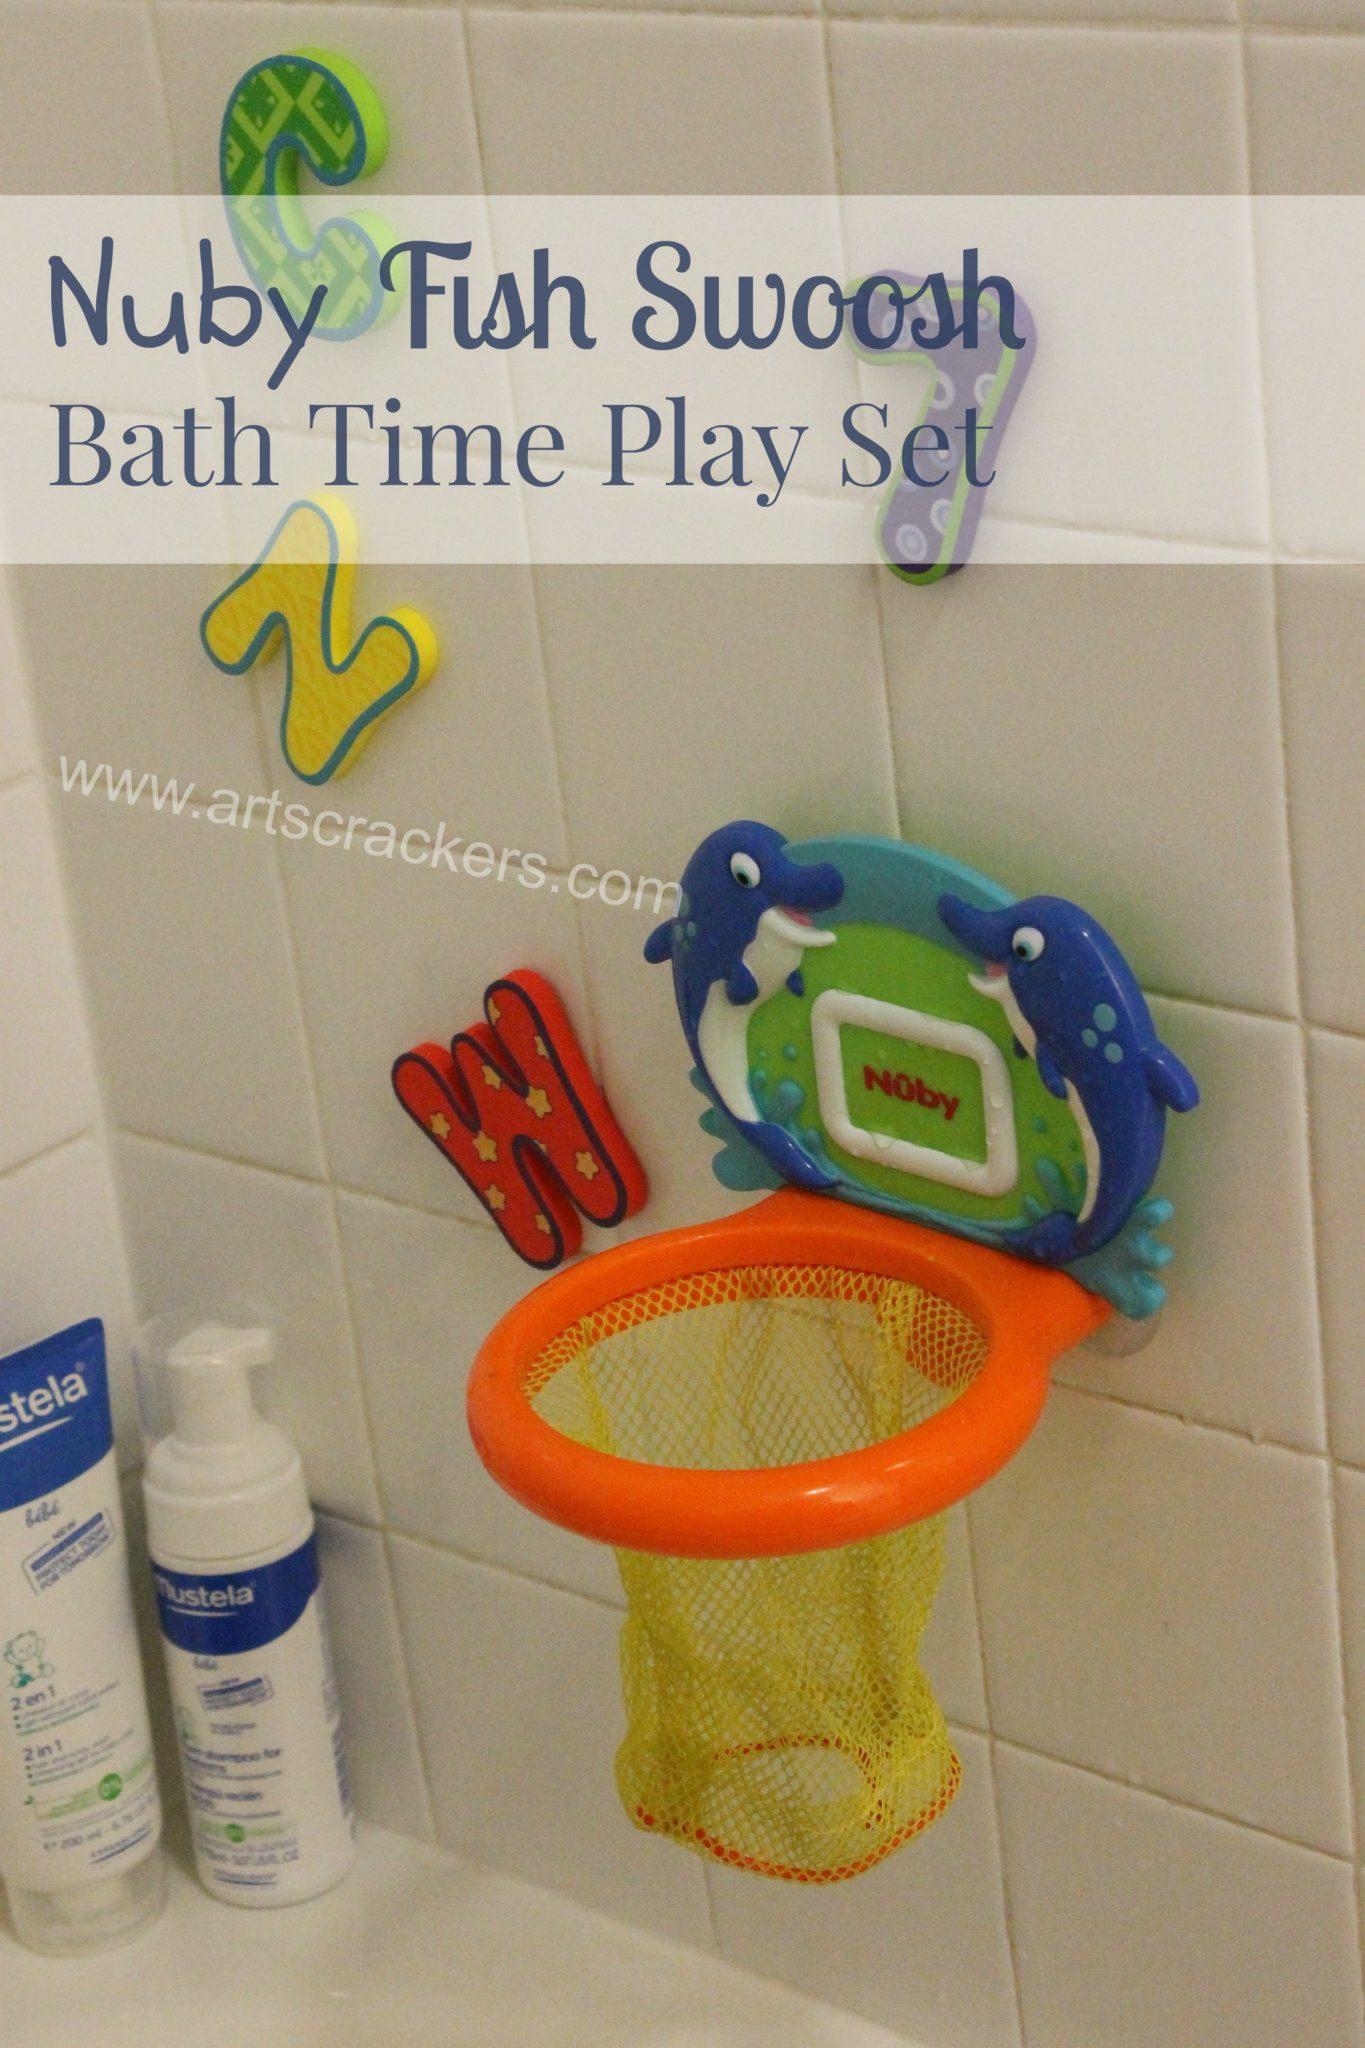 Nuby Fish Swoosh Bath Time Play Set